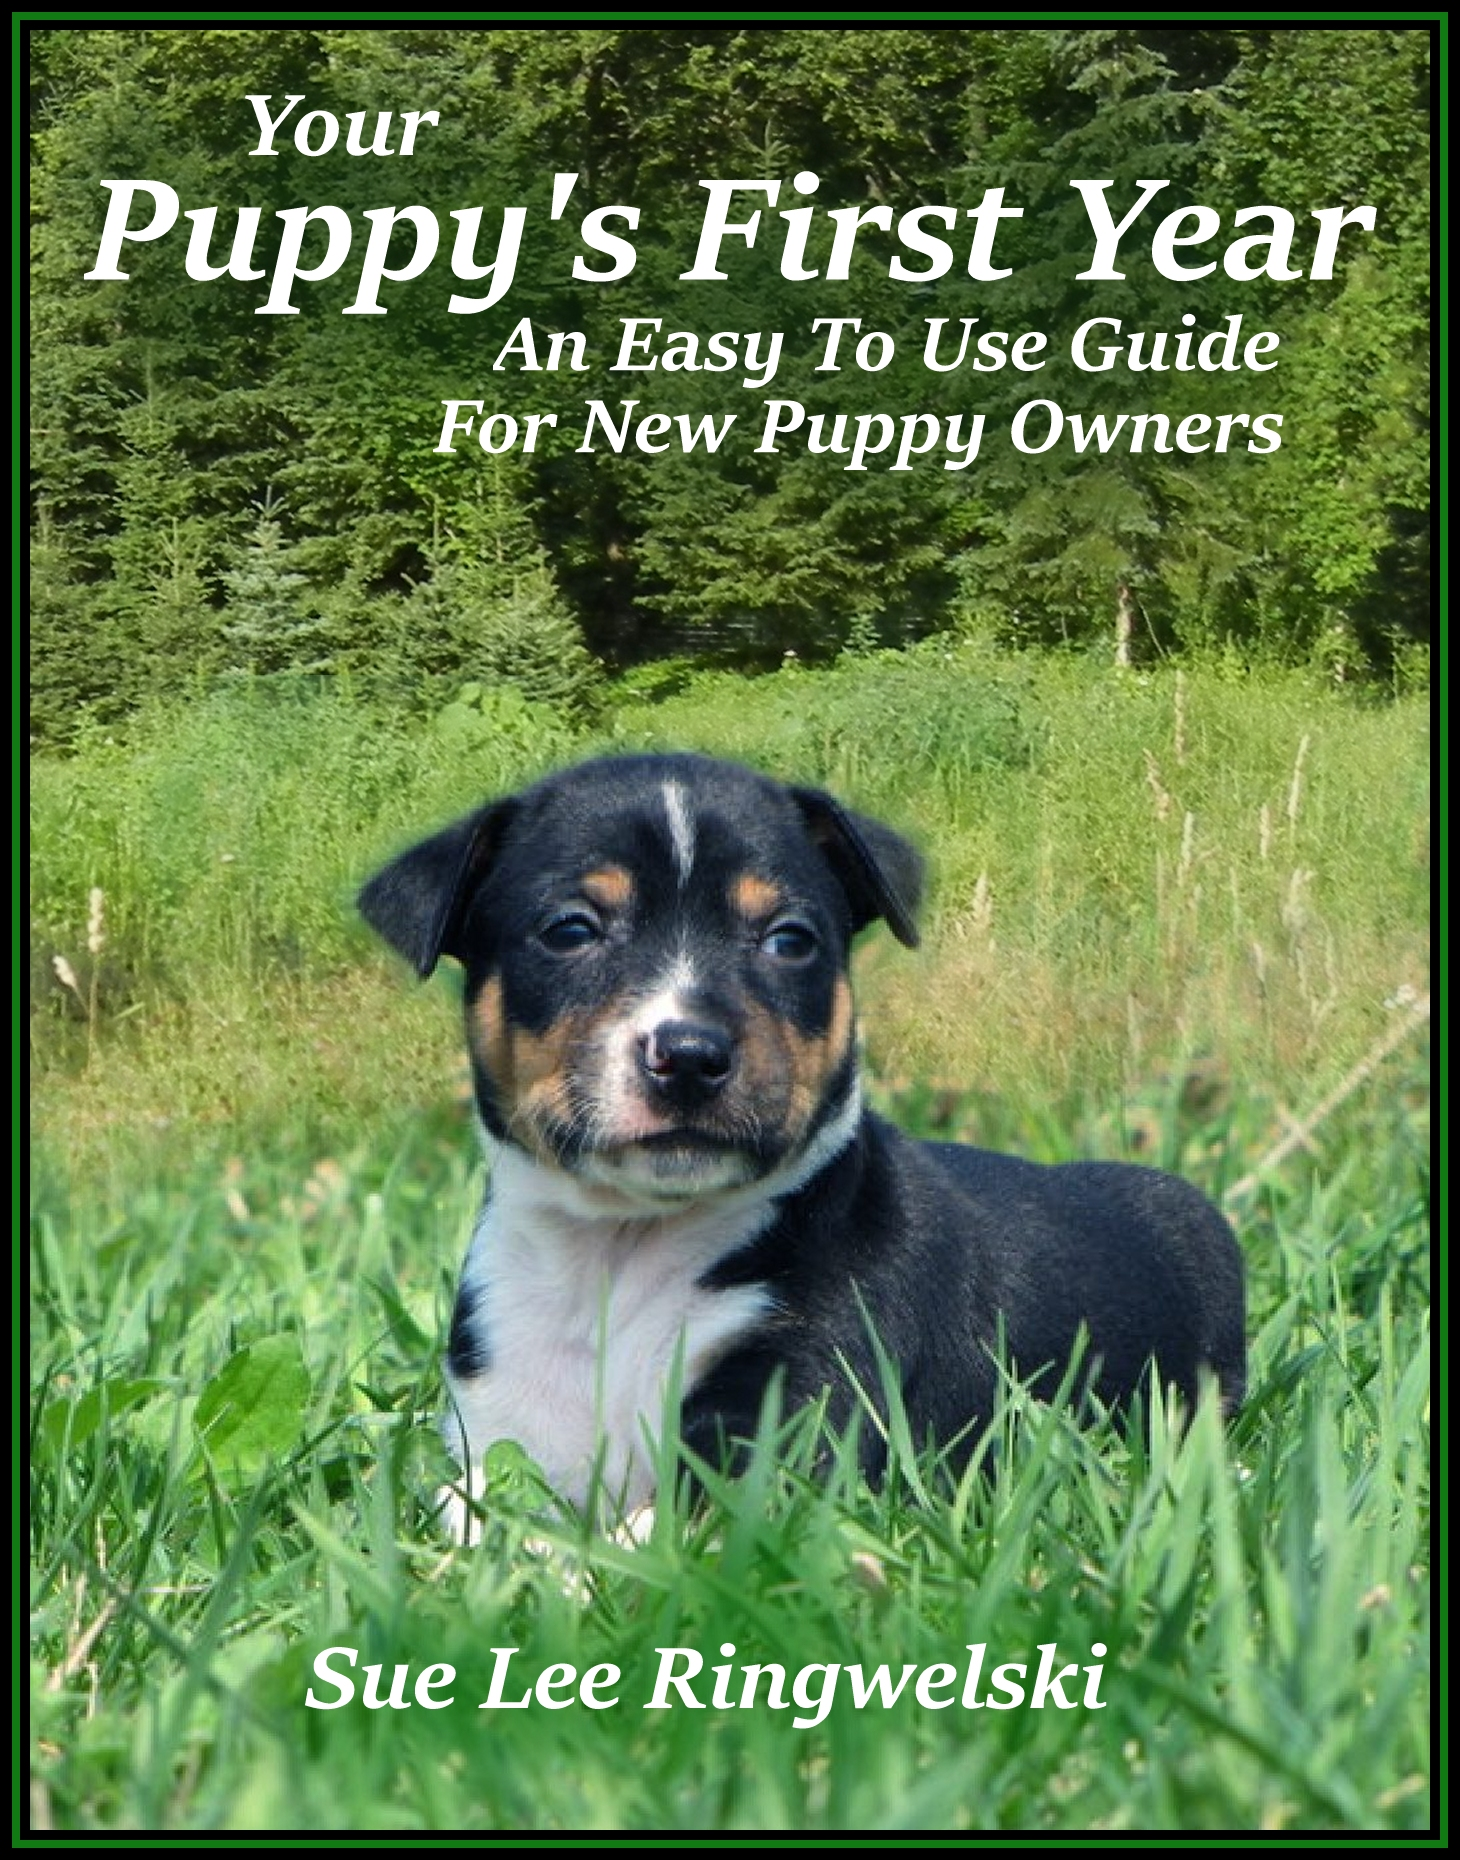 Your Puppy's First Year, a book by Sue Lee Ringwelski